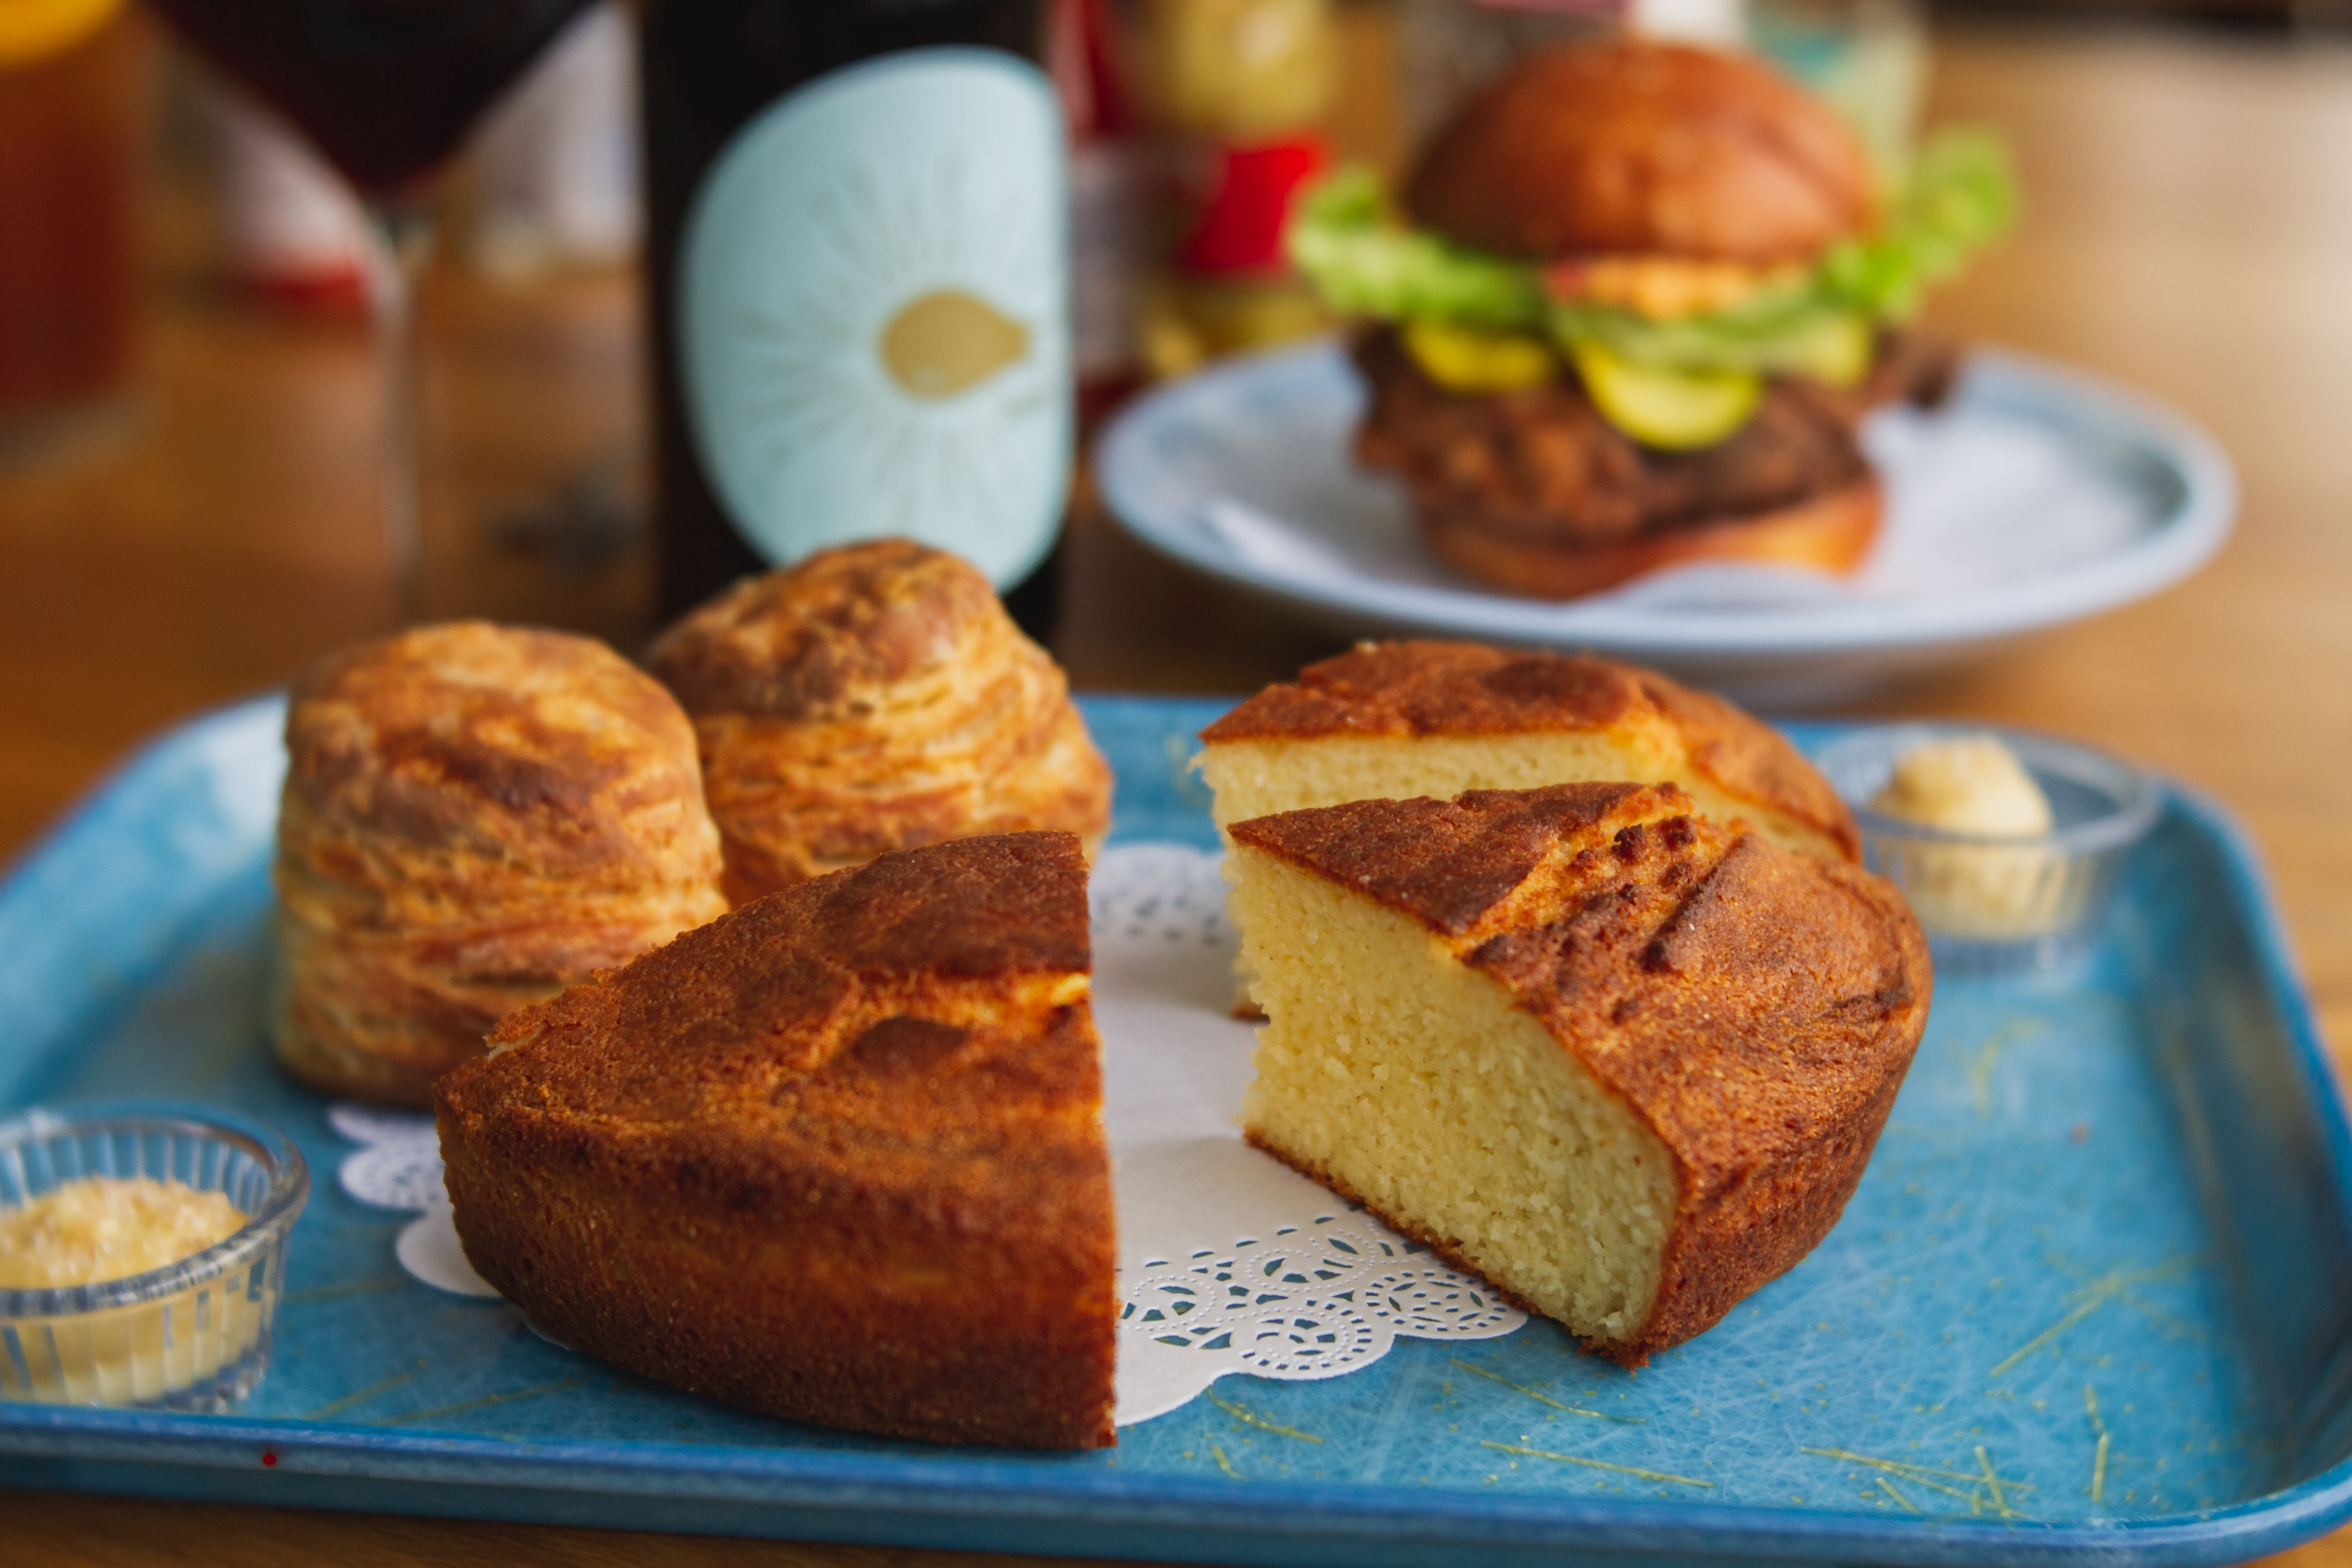 A loaf of cornbread sits on a doily on a blue tray, next to two biscuits and some sorghum butter. Behind it, a bottle of Yonder's brand wine and an Intimidator sandwich sit out of frame.